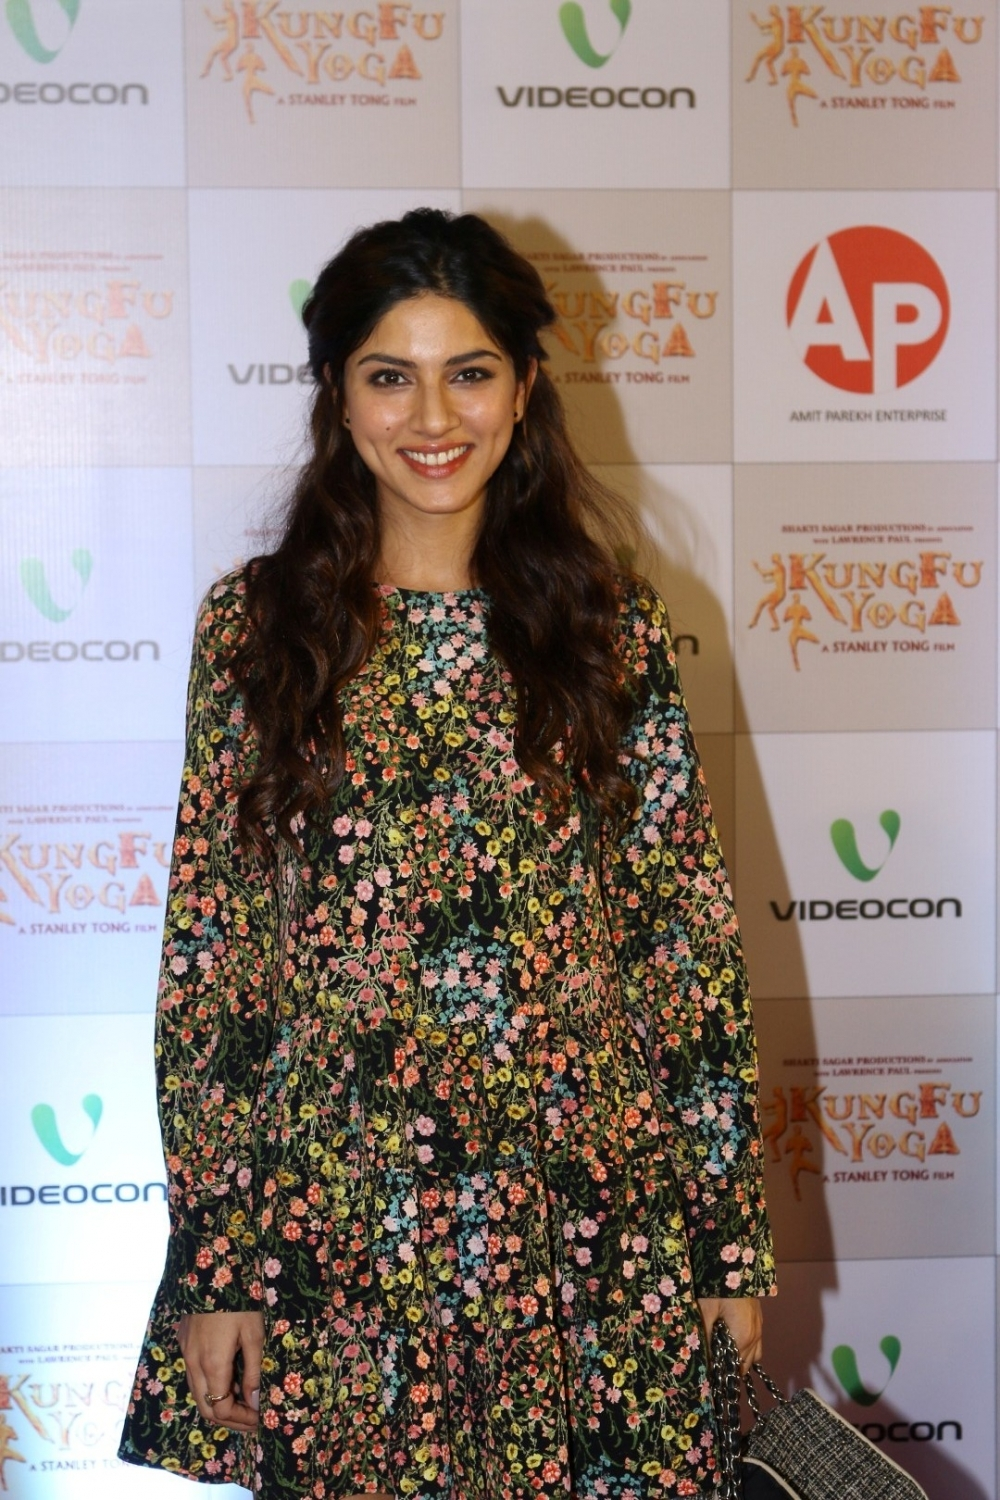 Mumbai: Actress Sapna Pabbi during the screening of film Kung Fu Yoga in Mumbai on Feb 2, 2017. (Photo: IANS)